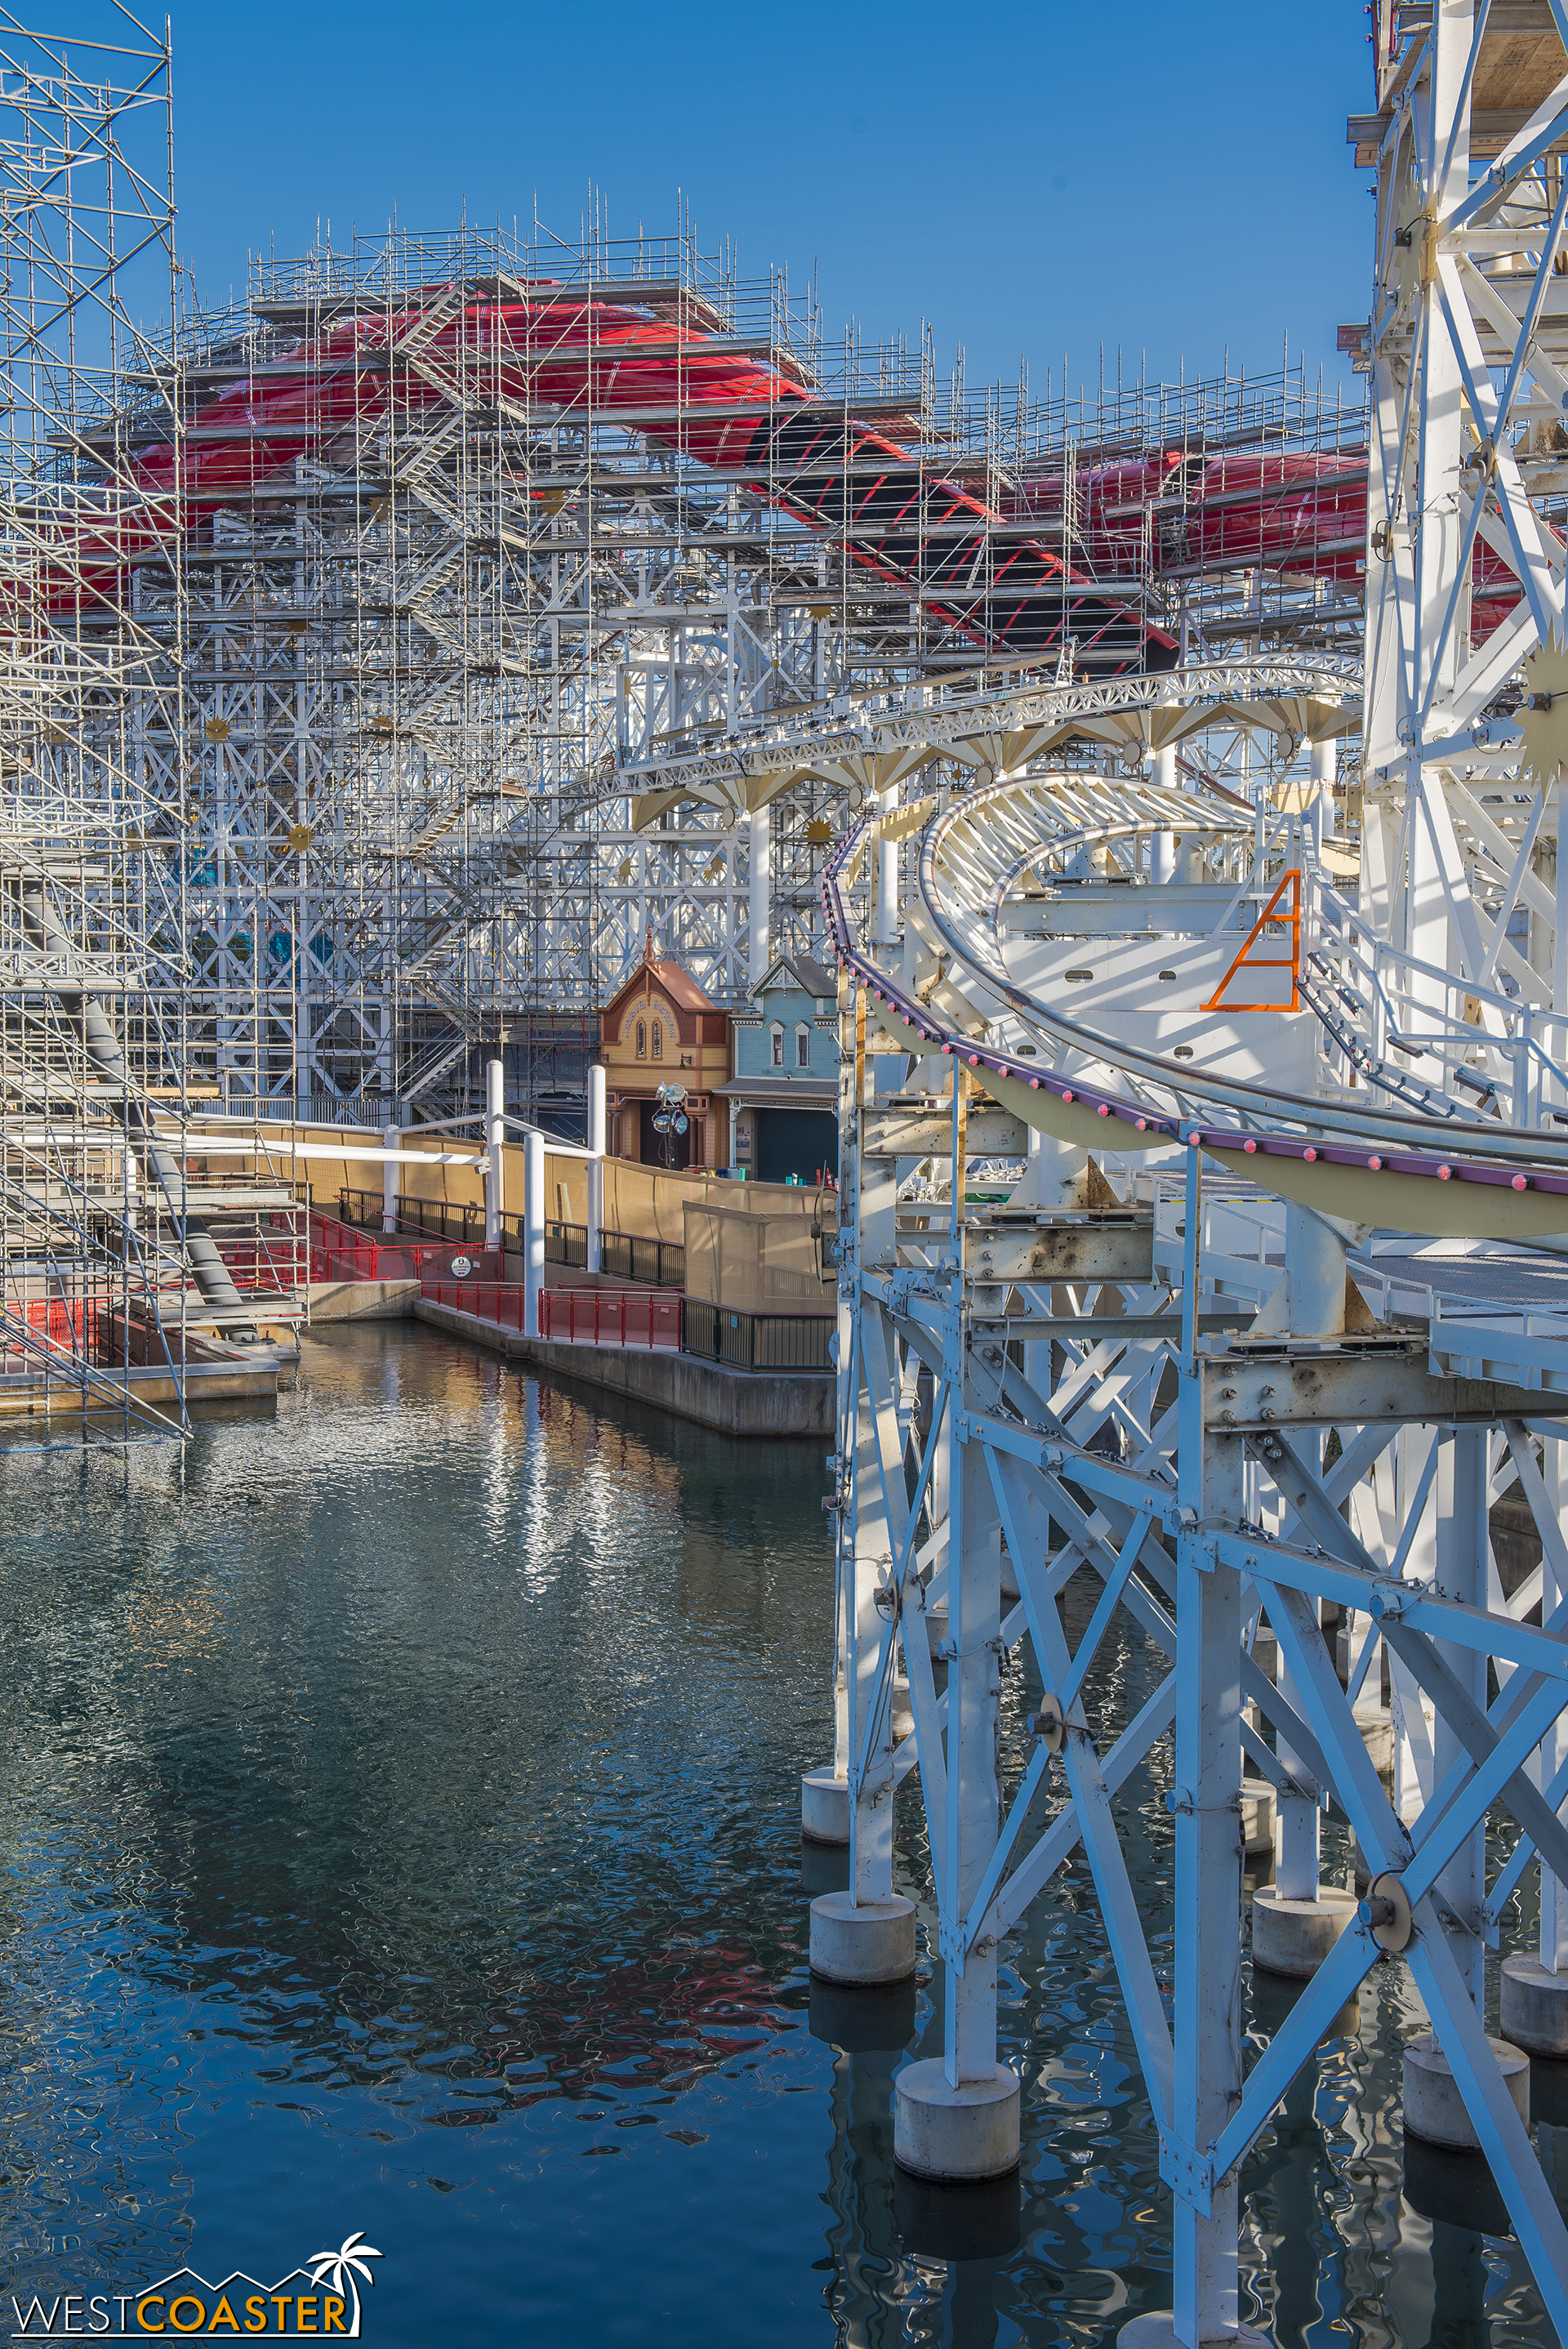 The Incredicoaster is coming along.